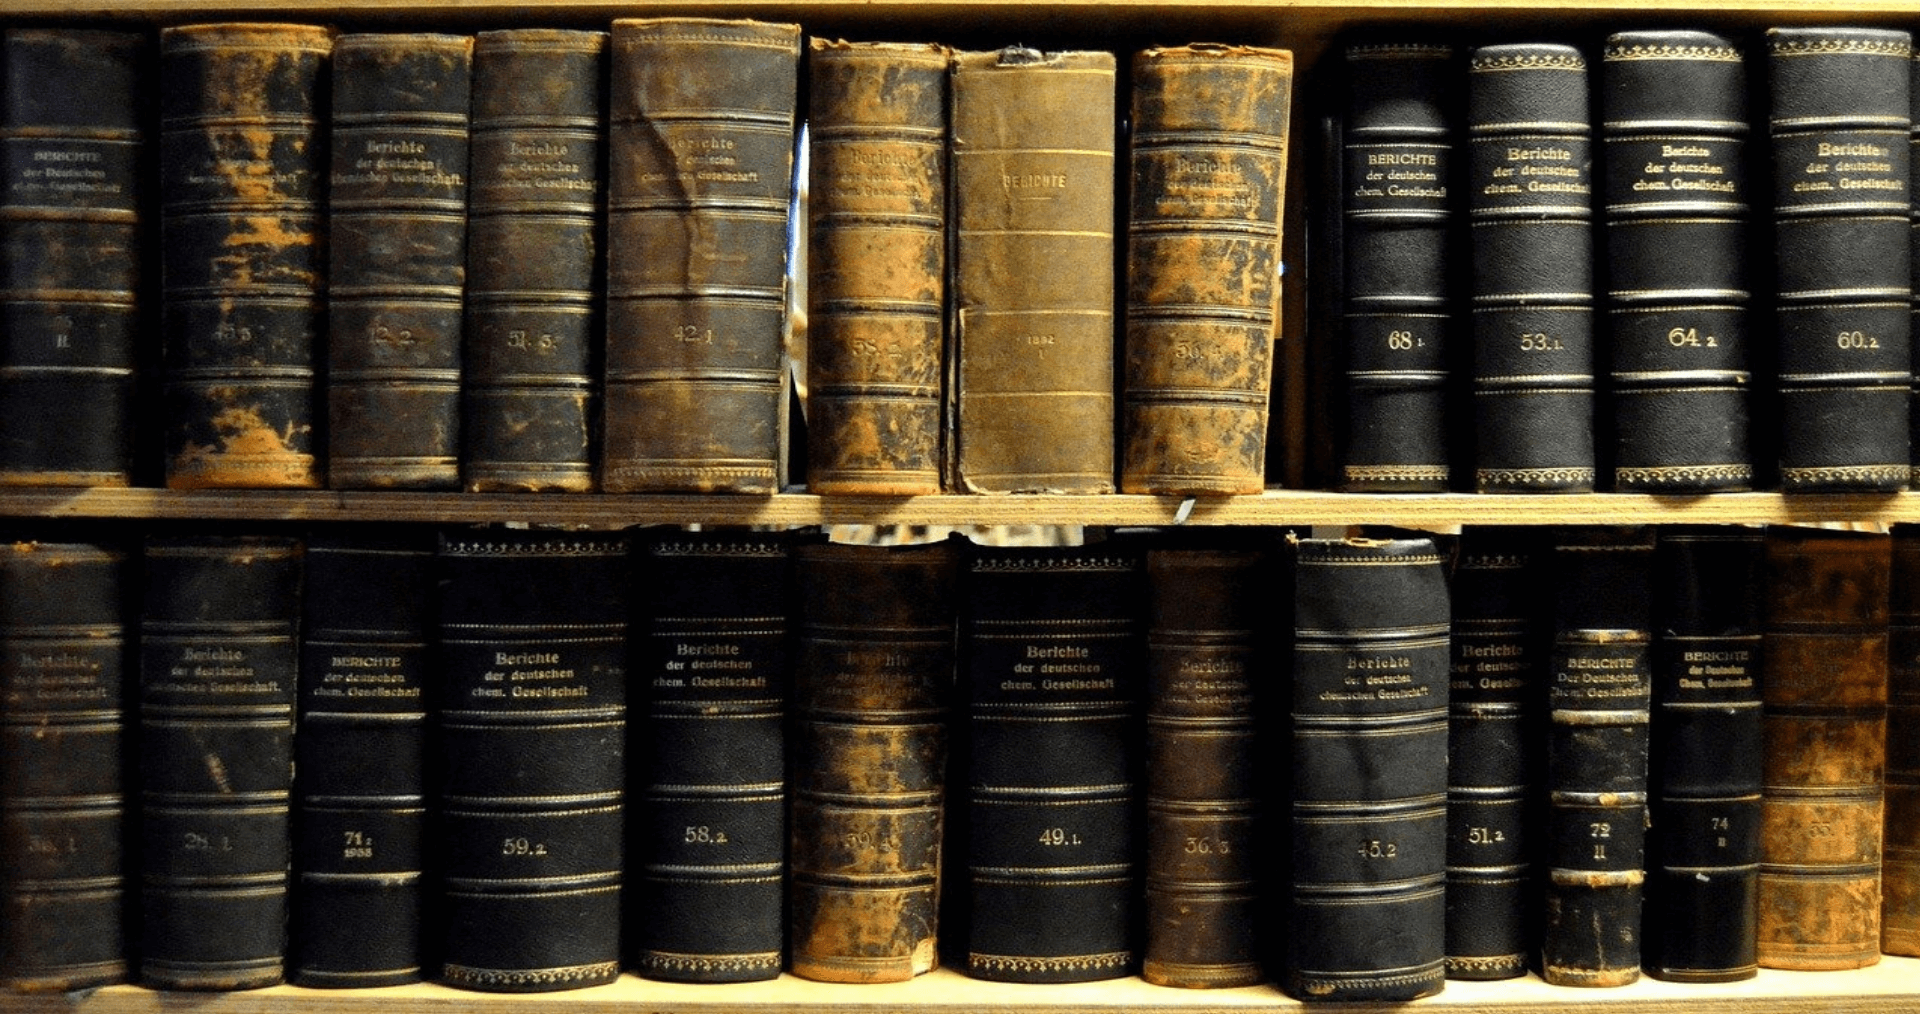 This is the banner image of a bookshelf of old books to represent the took of the page - Resources